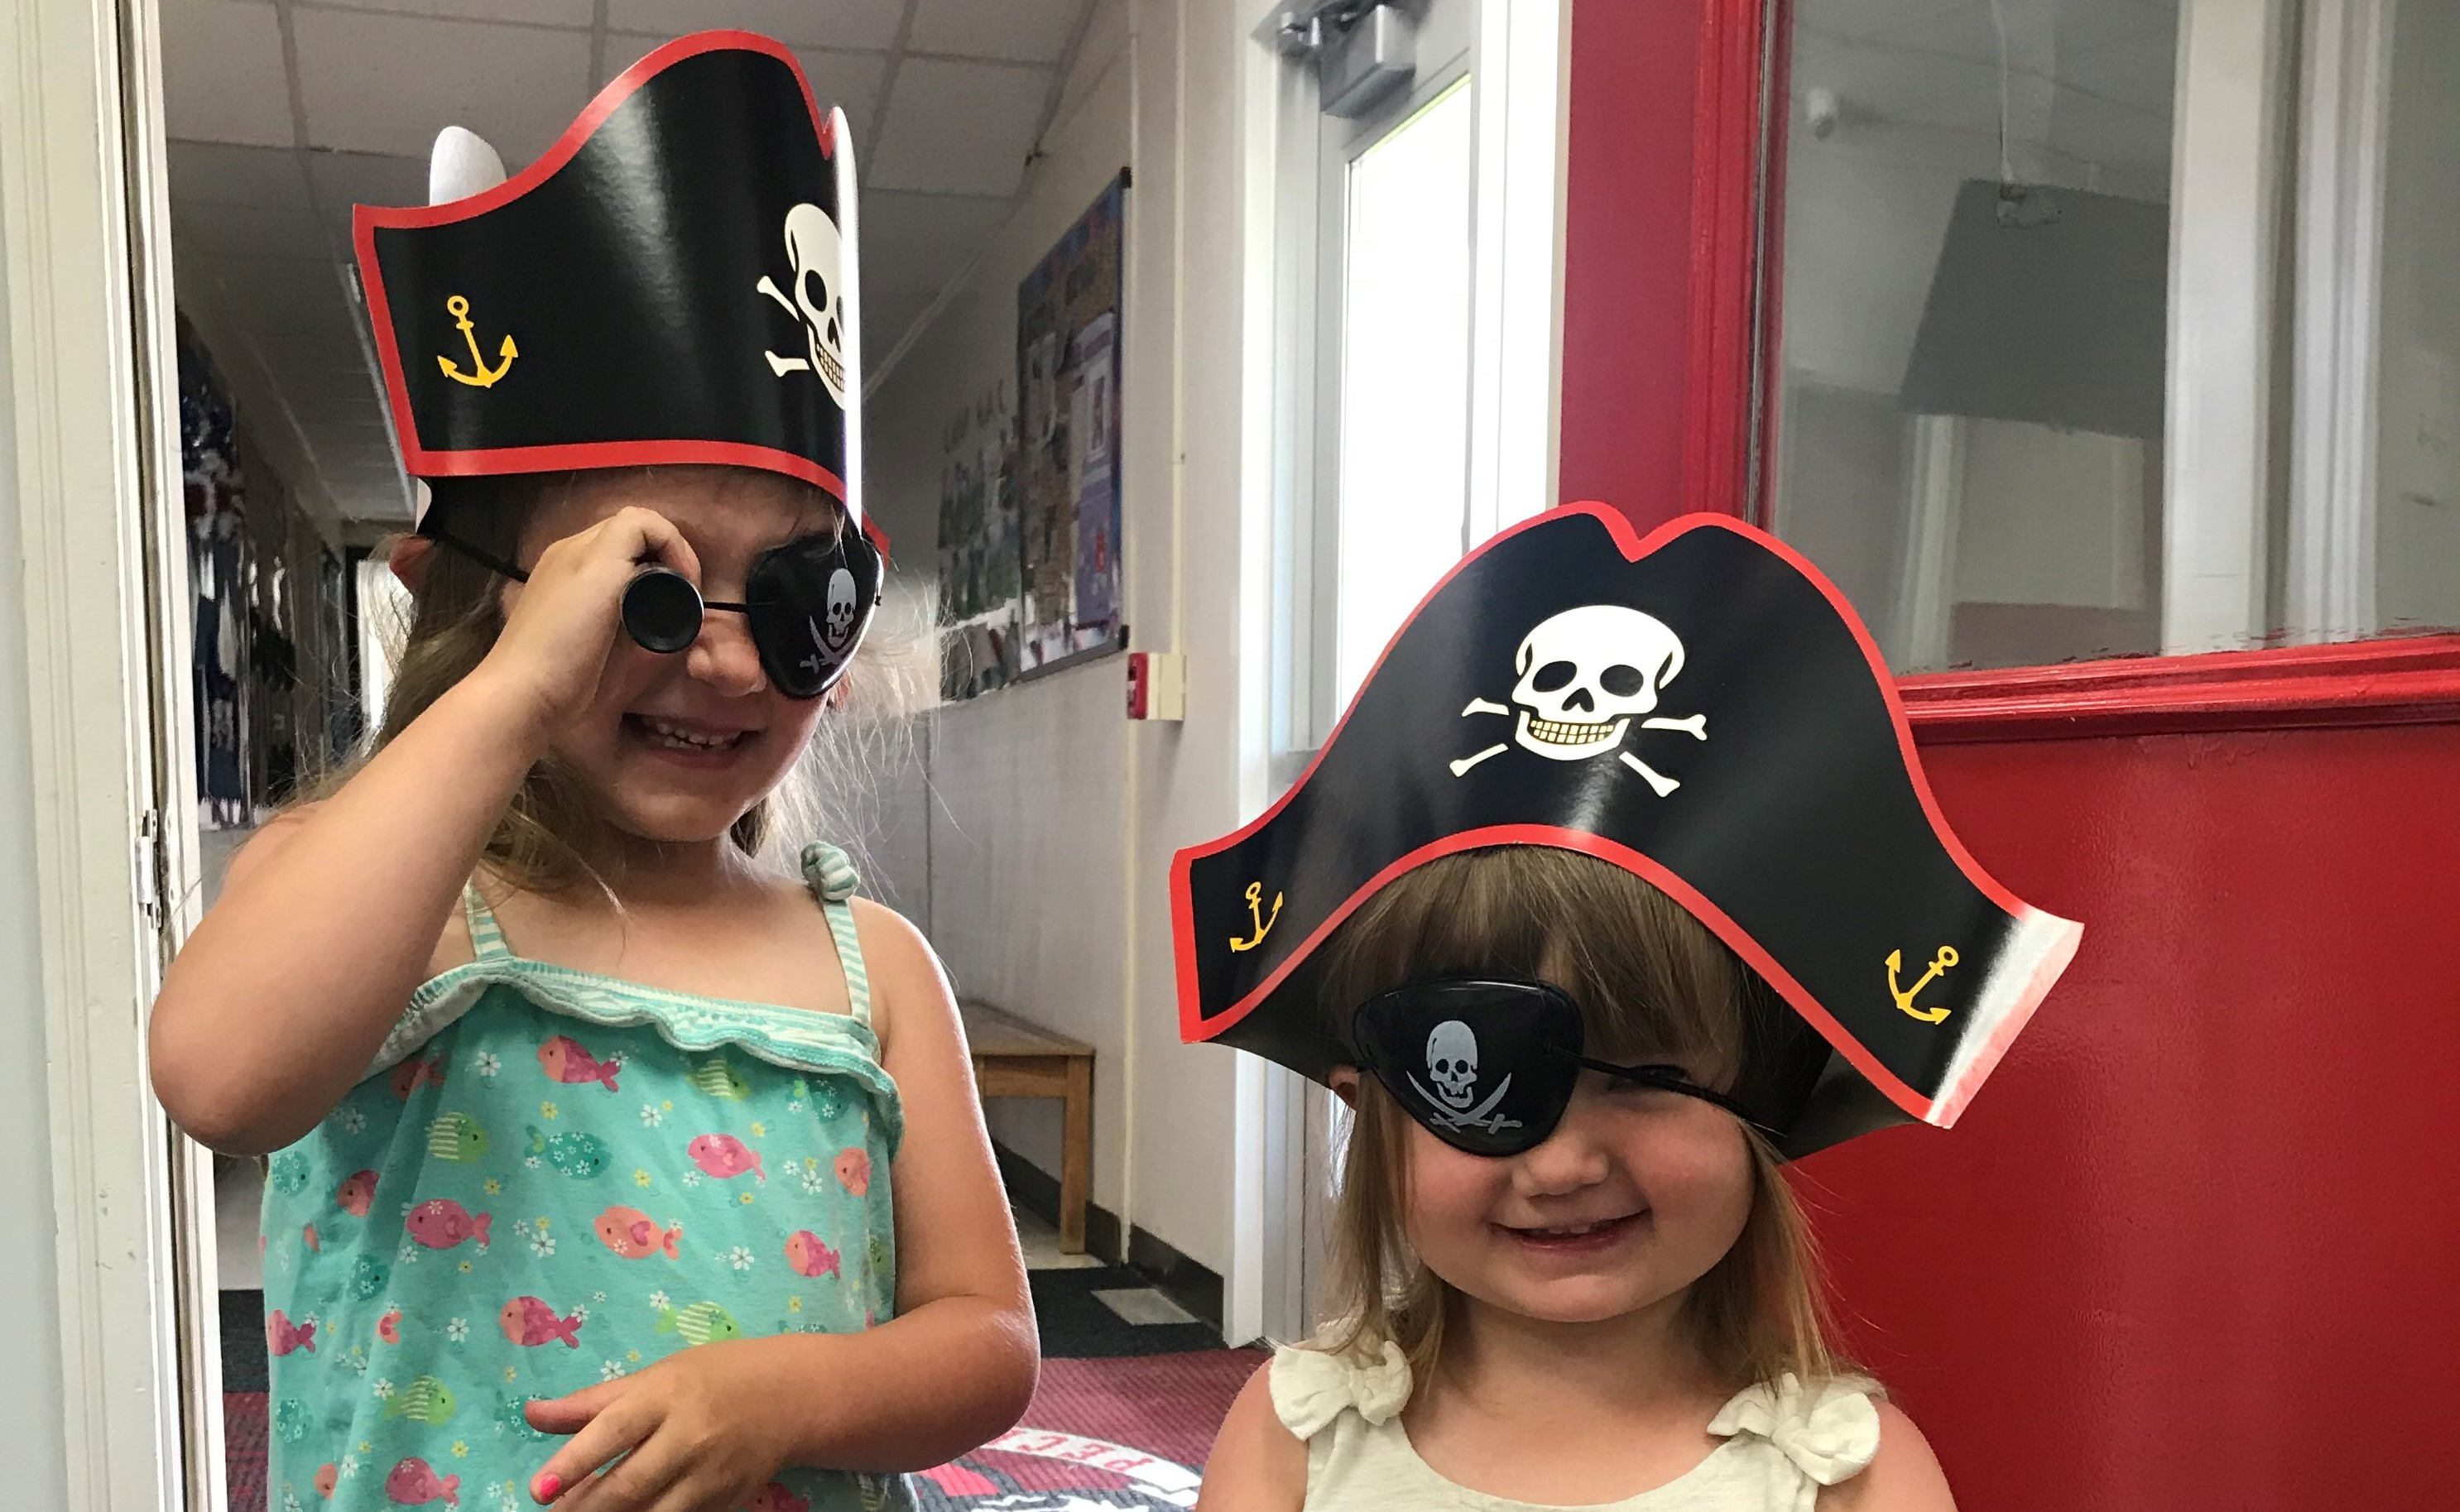 Young Girls with Pirate Stuff